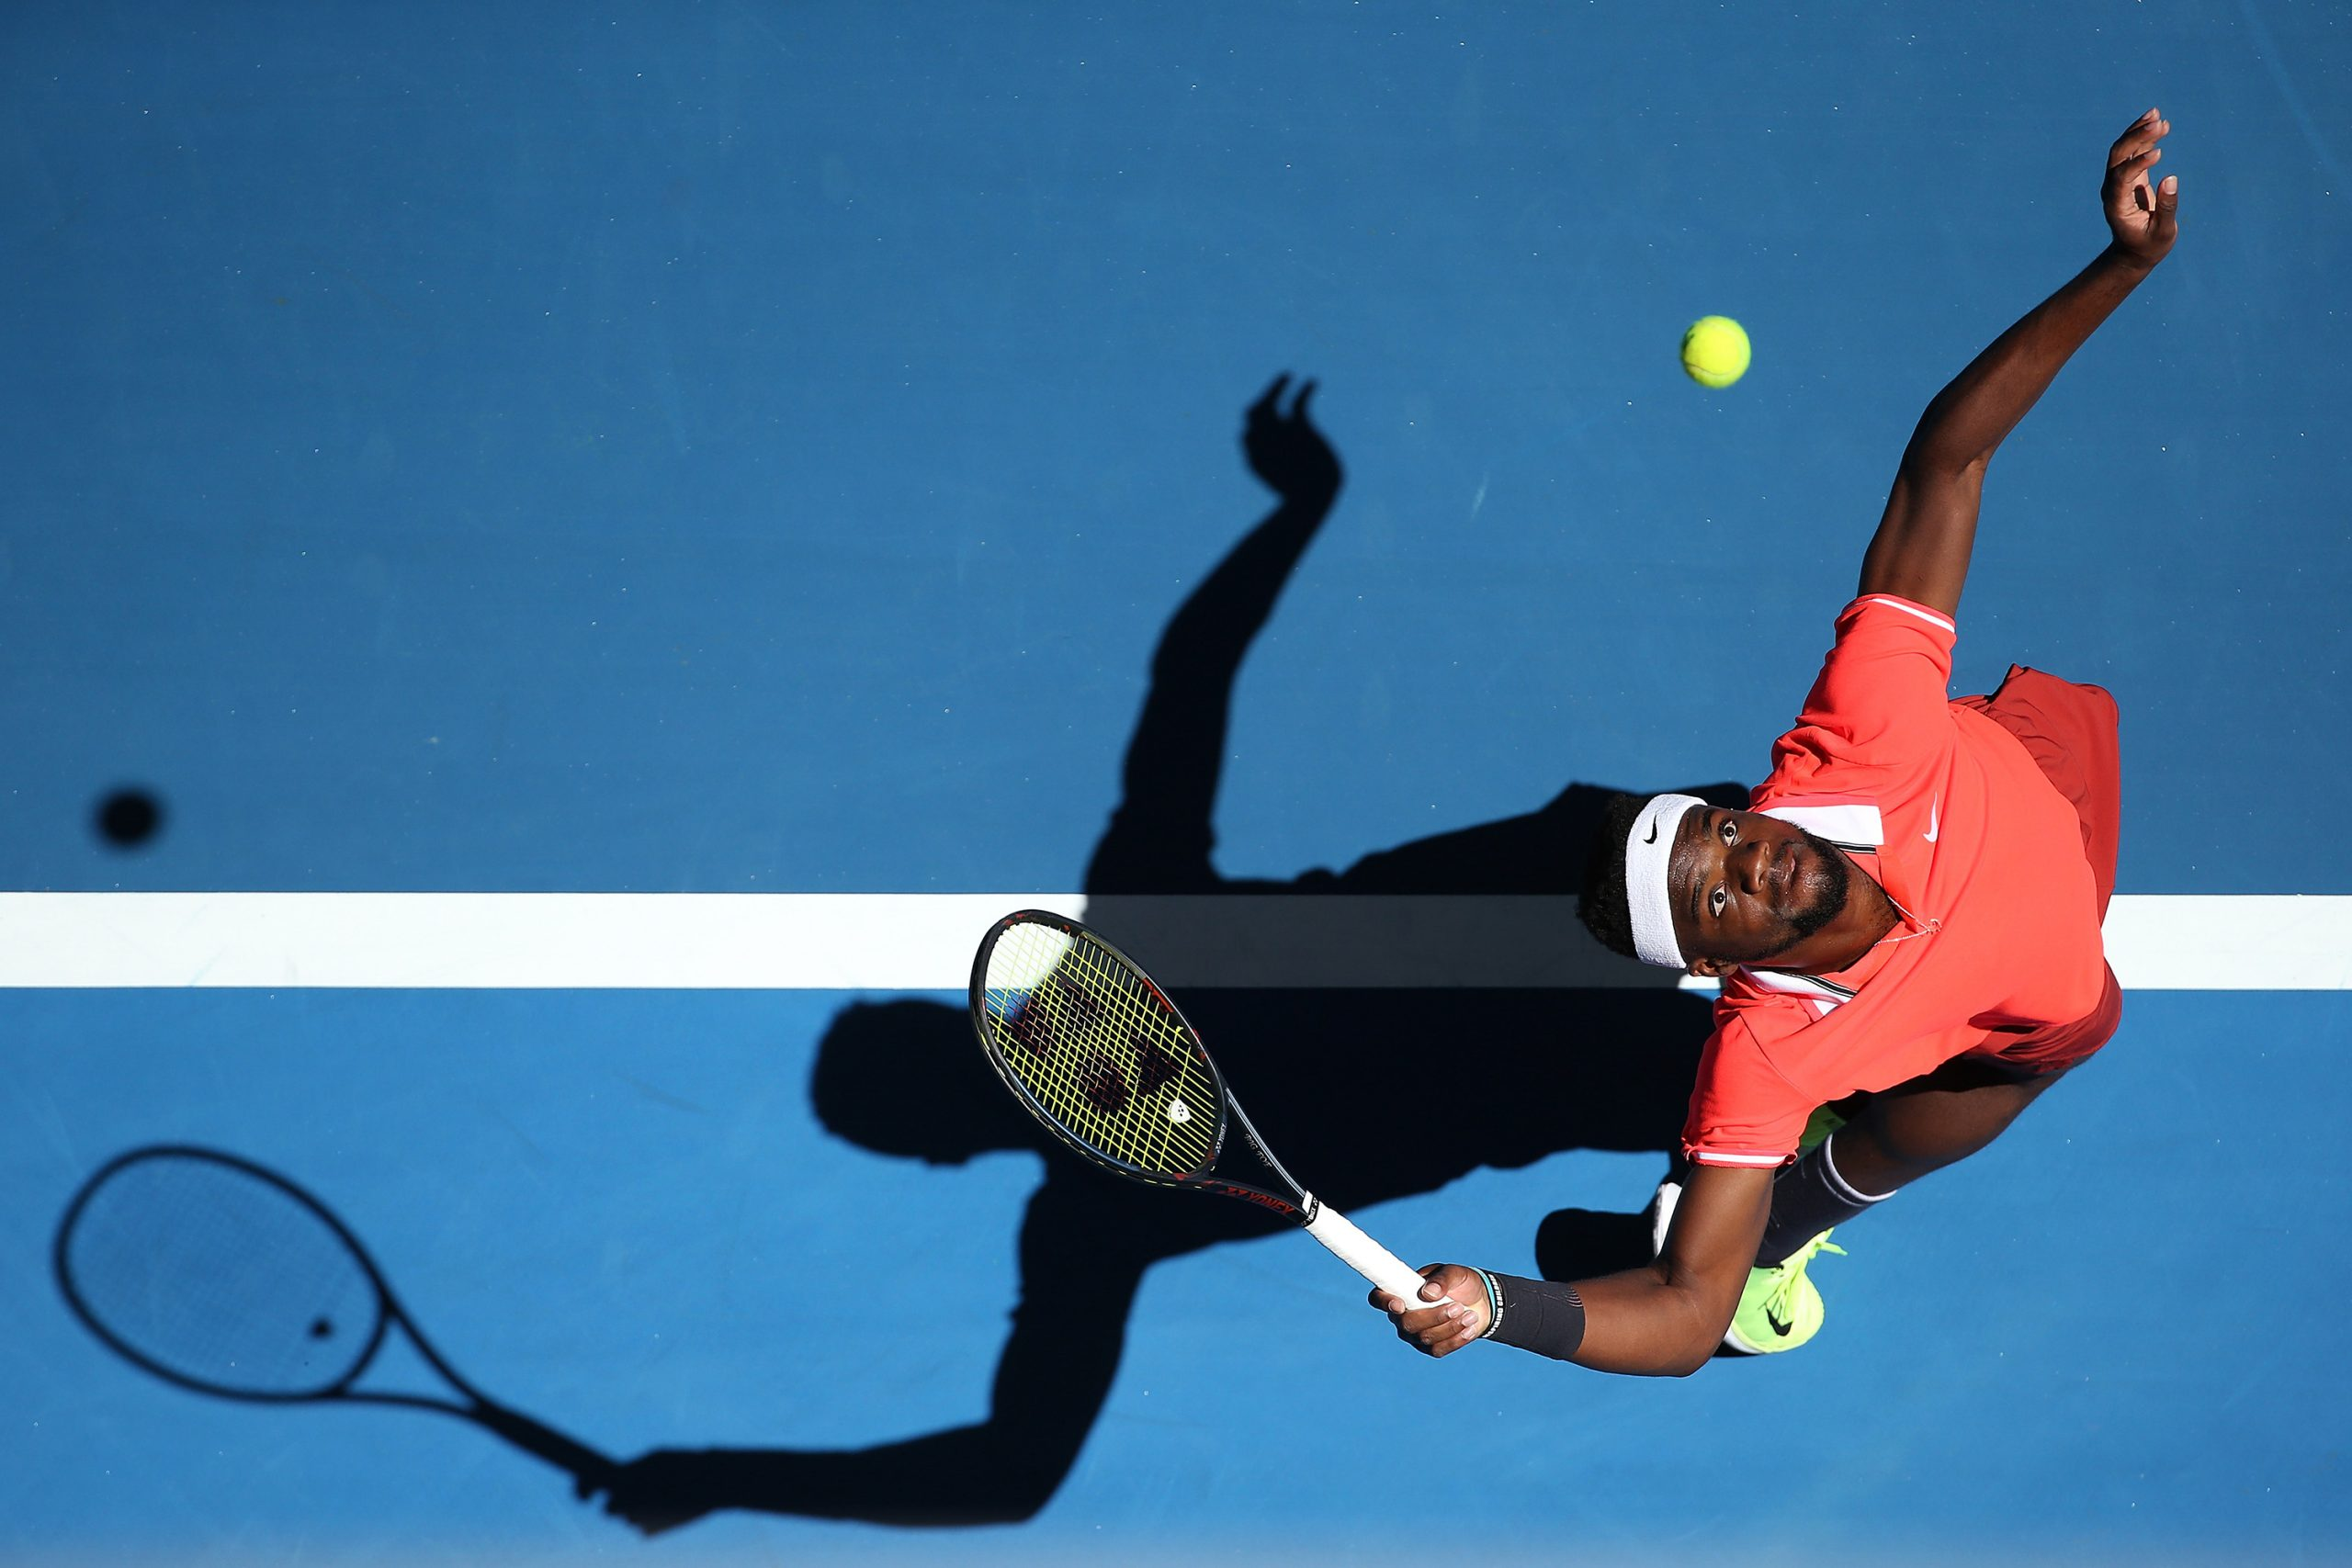 31 December 2018: Frances Tiafoe of the United States serves to Stefanos Tsitsipas of Greece at the 2019 Hopman Cup in Perth, Australia. 'It could have been the likes of any of my loved ones,' said Tiafoe of George Floyd's killing. 'It could have been me.' (Photograph by Paul Kane/Getty Images)